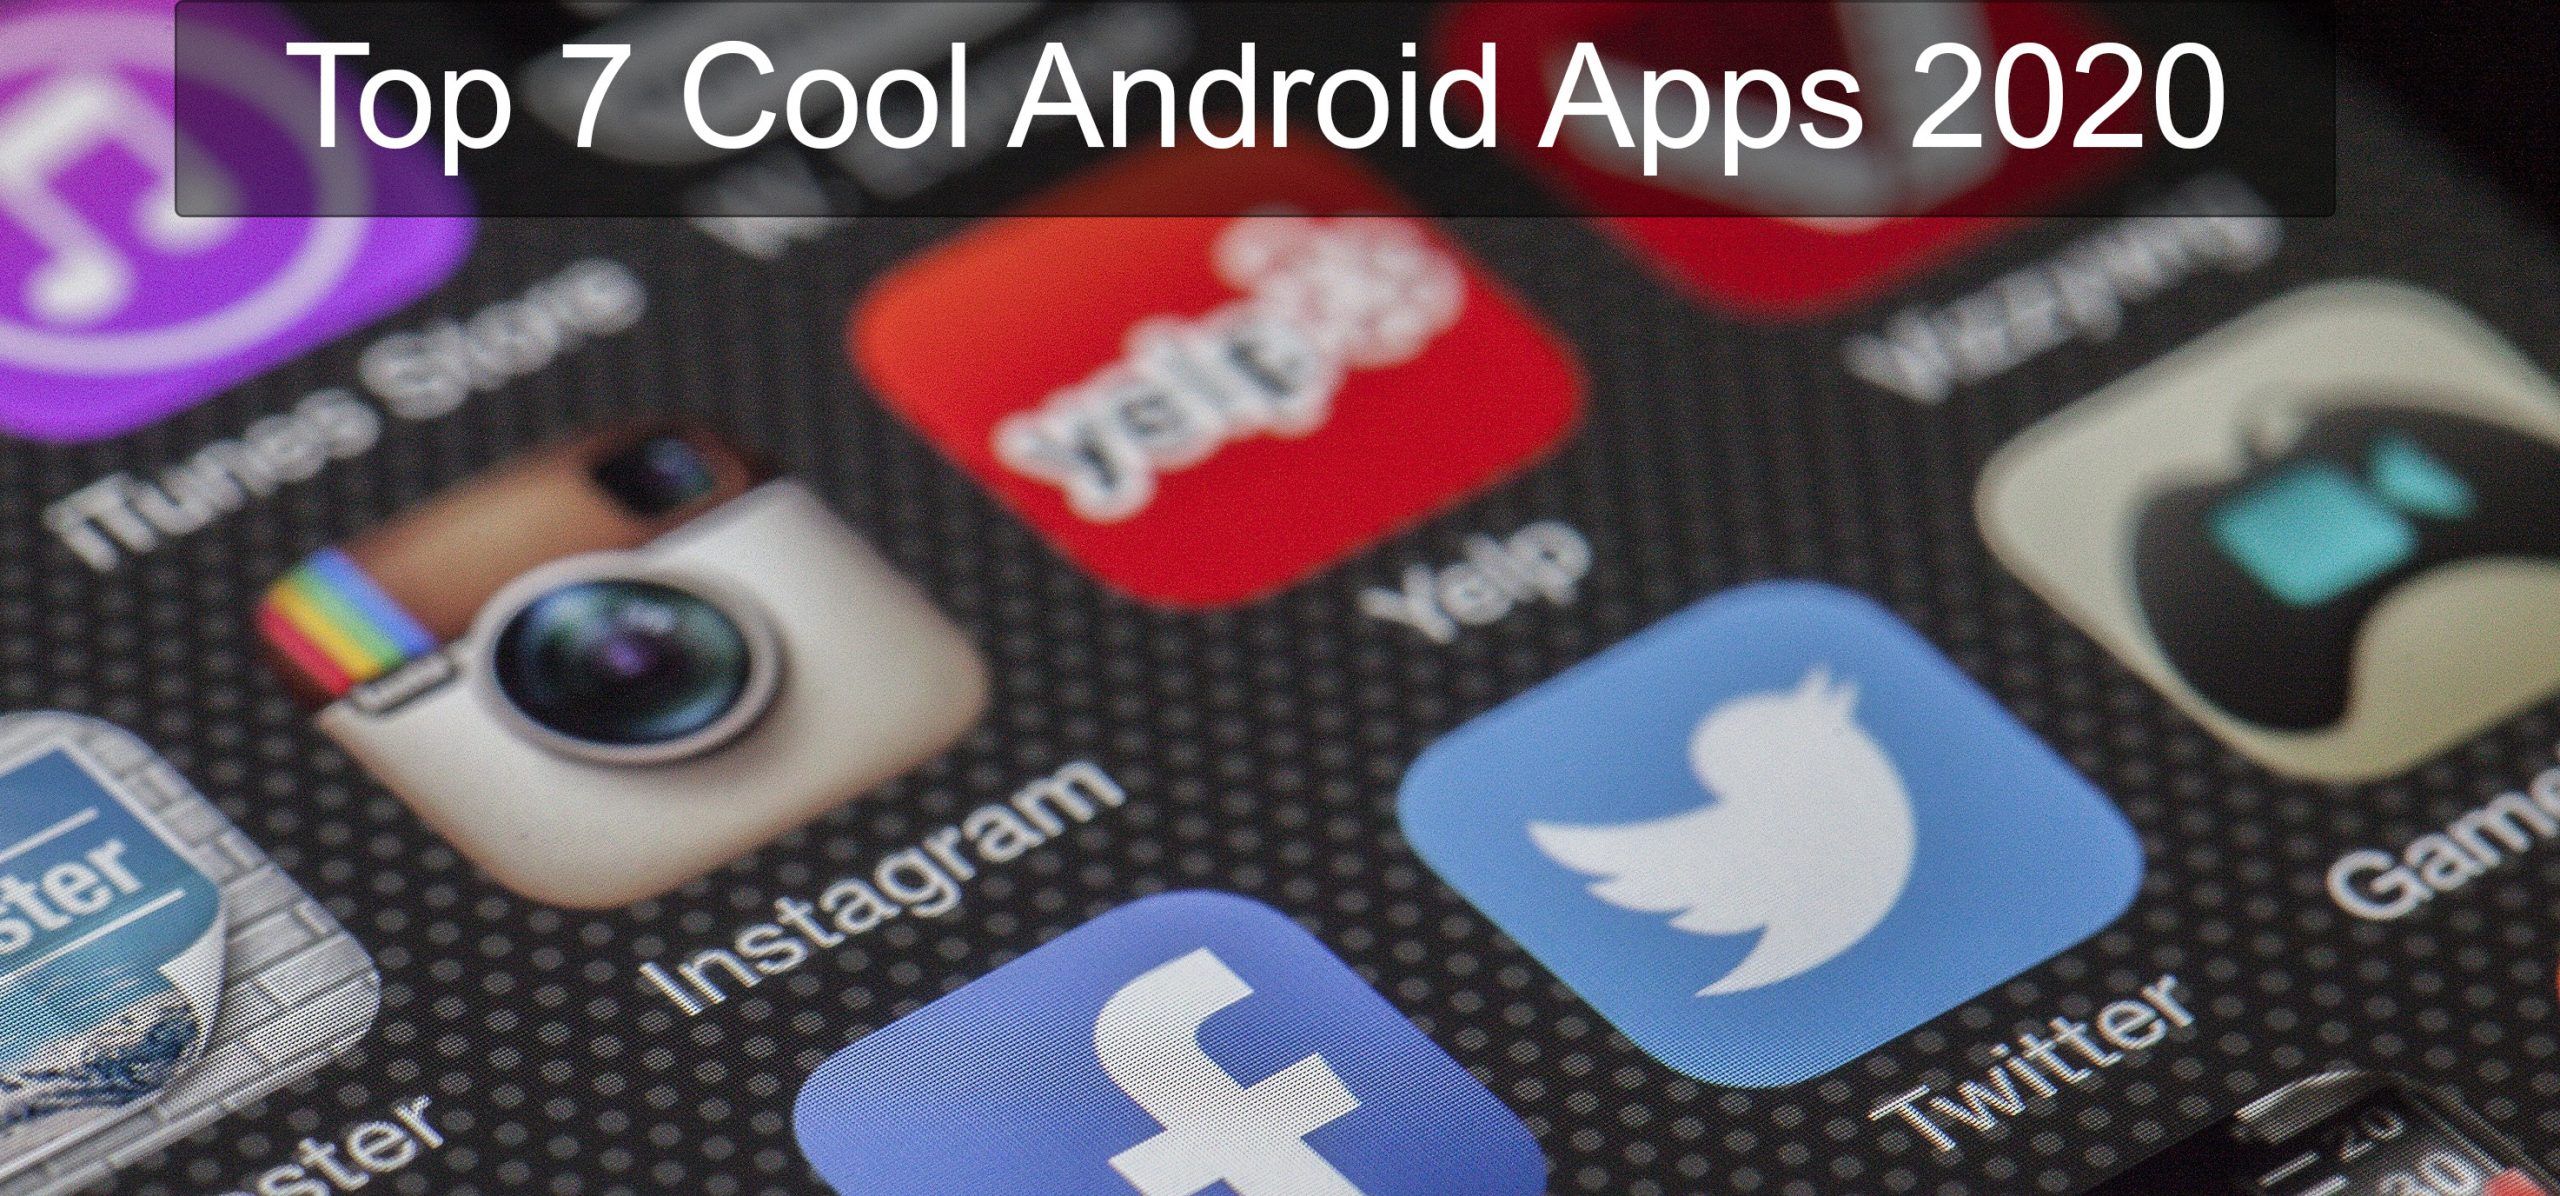 Top 7 Cool Android Apps 2020